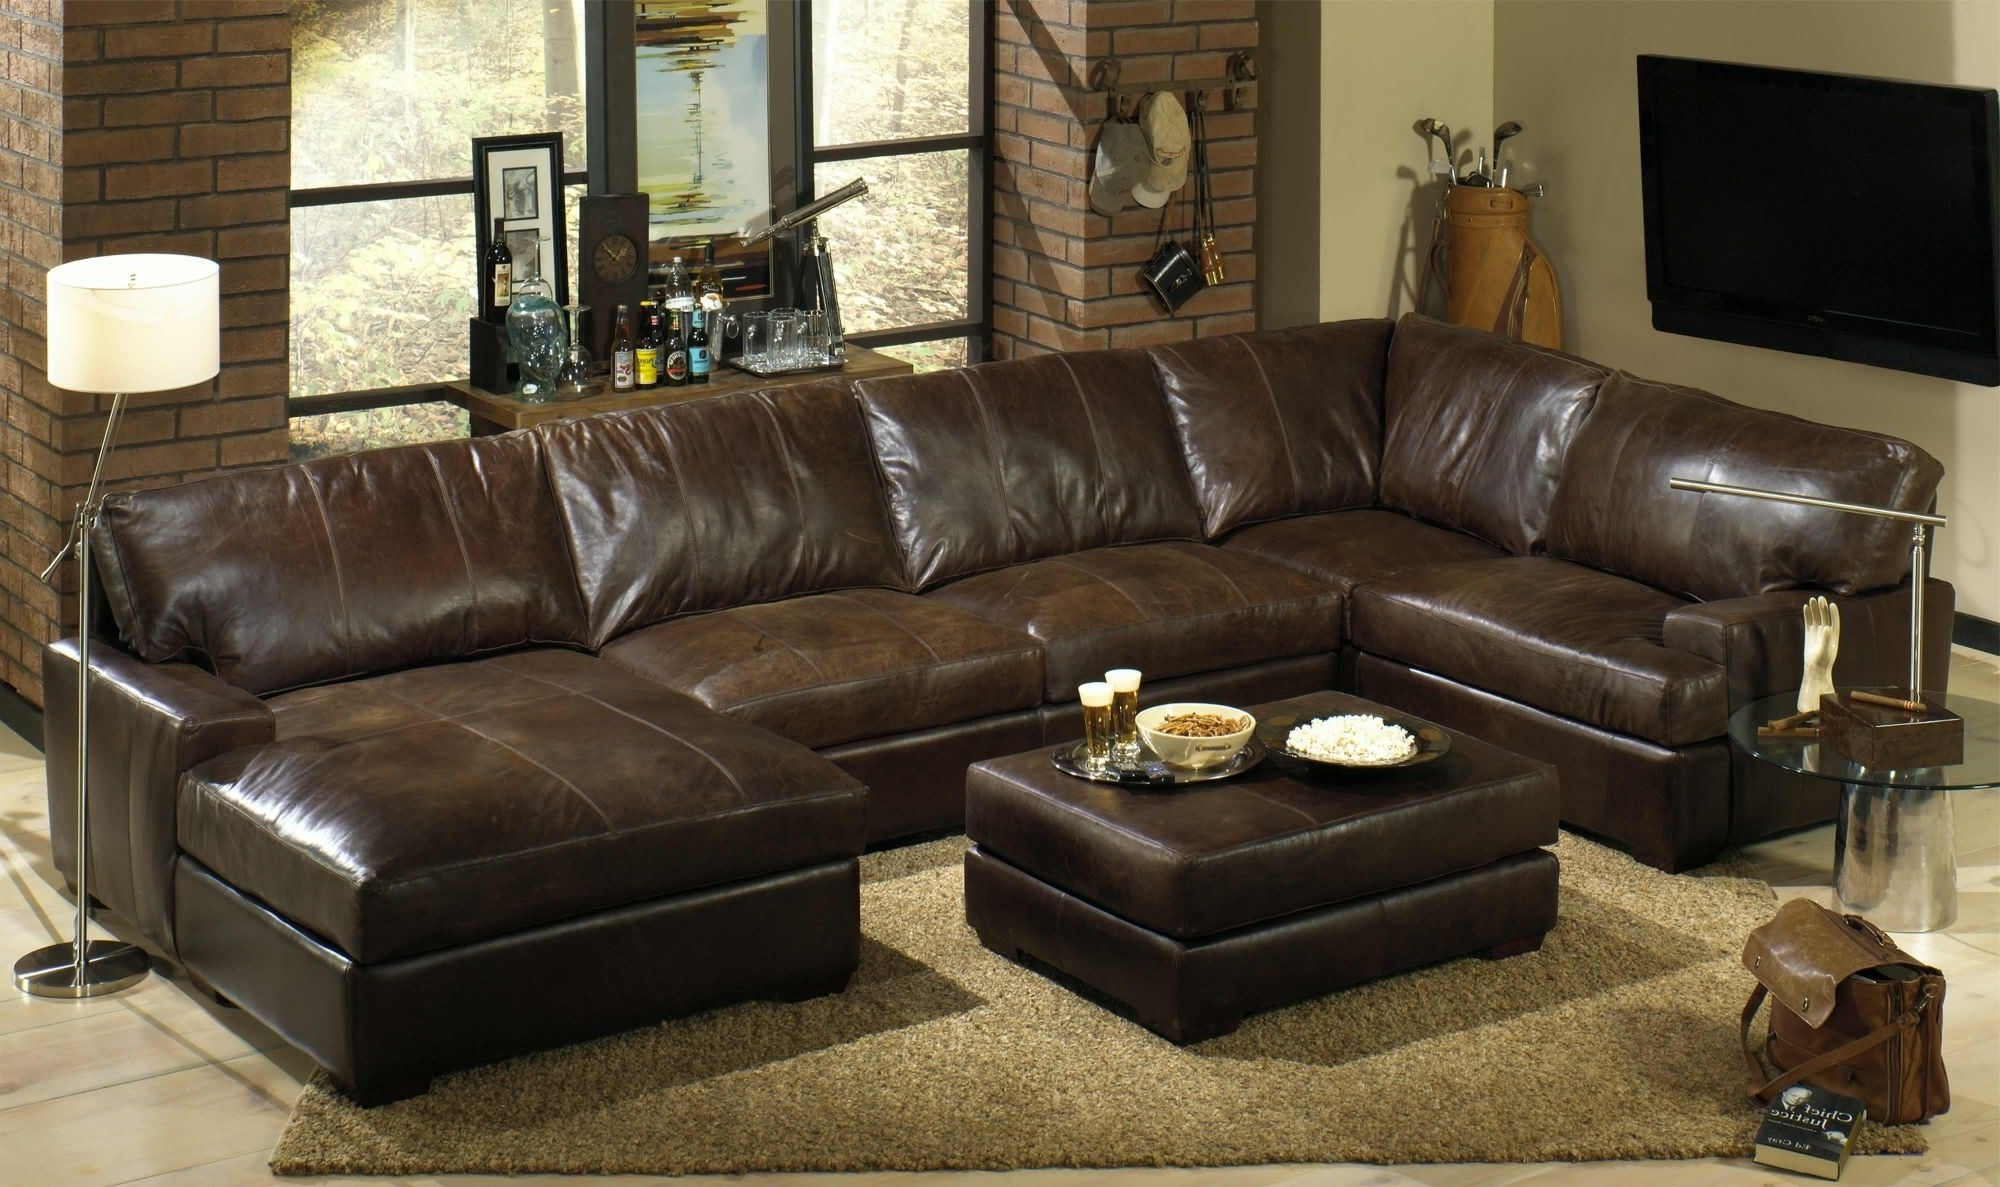 Best Sofa Unnamed File Small Sectional With Recliner Pict For In Well Known Sectional Sofas For Small Spaces With Recliners (View 2 of 20)